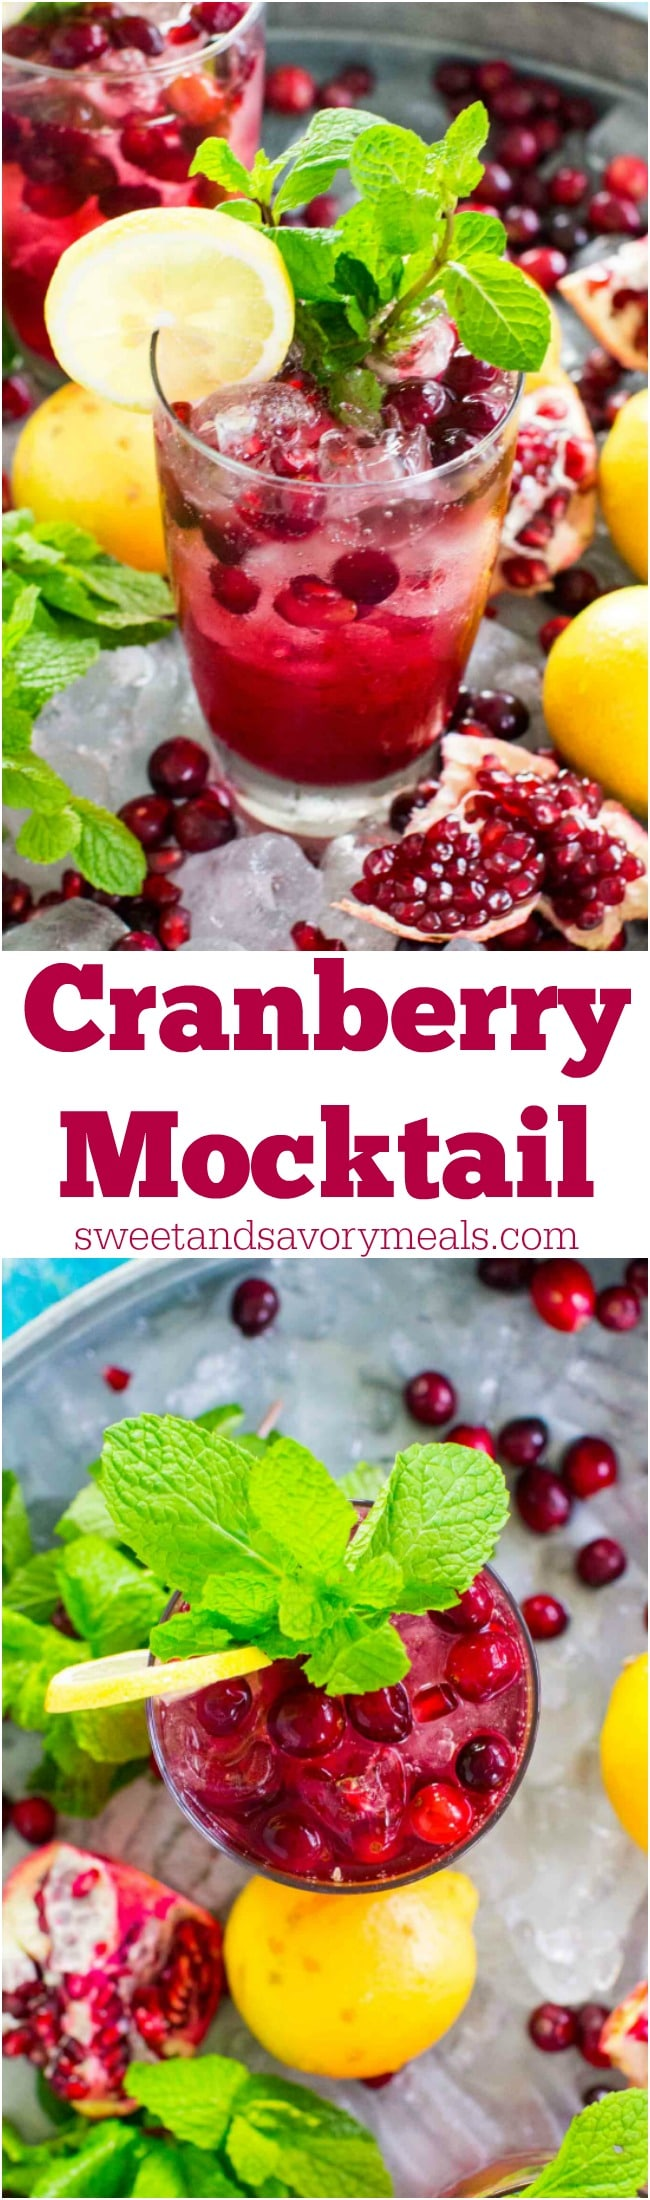 Cranberry Mocktail is the perfect fall drink, sweet and refreshing, can also be made ahead of time for your Thanksgiving feast.